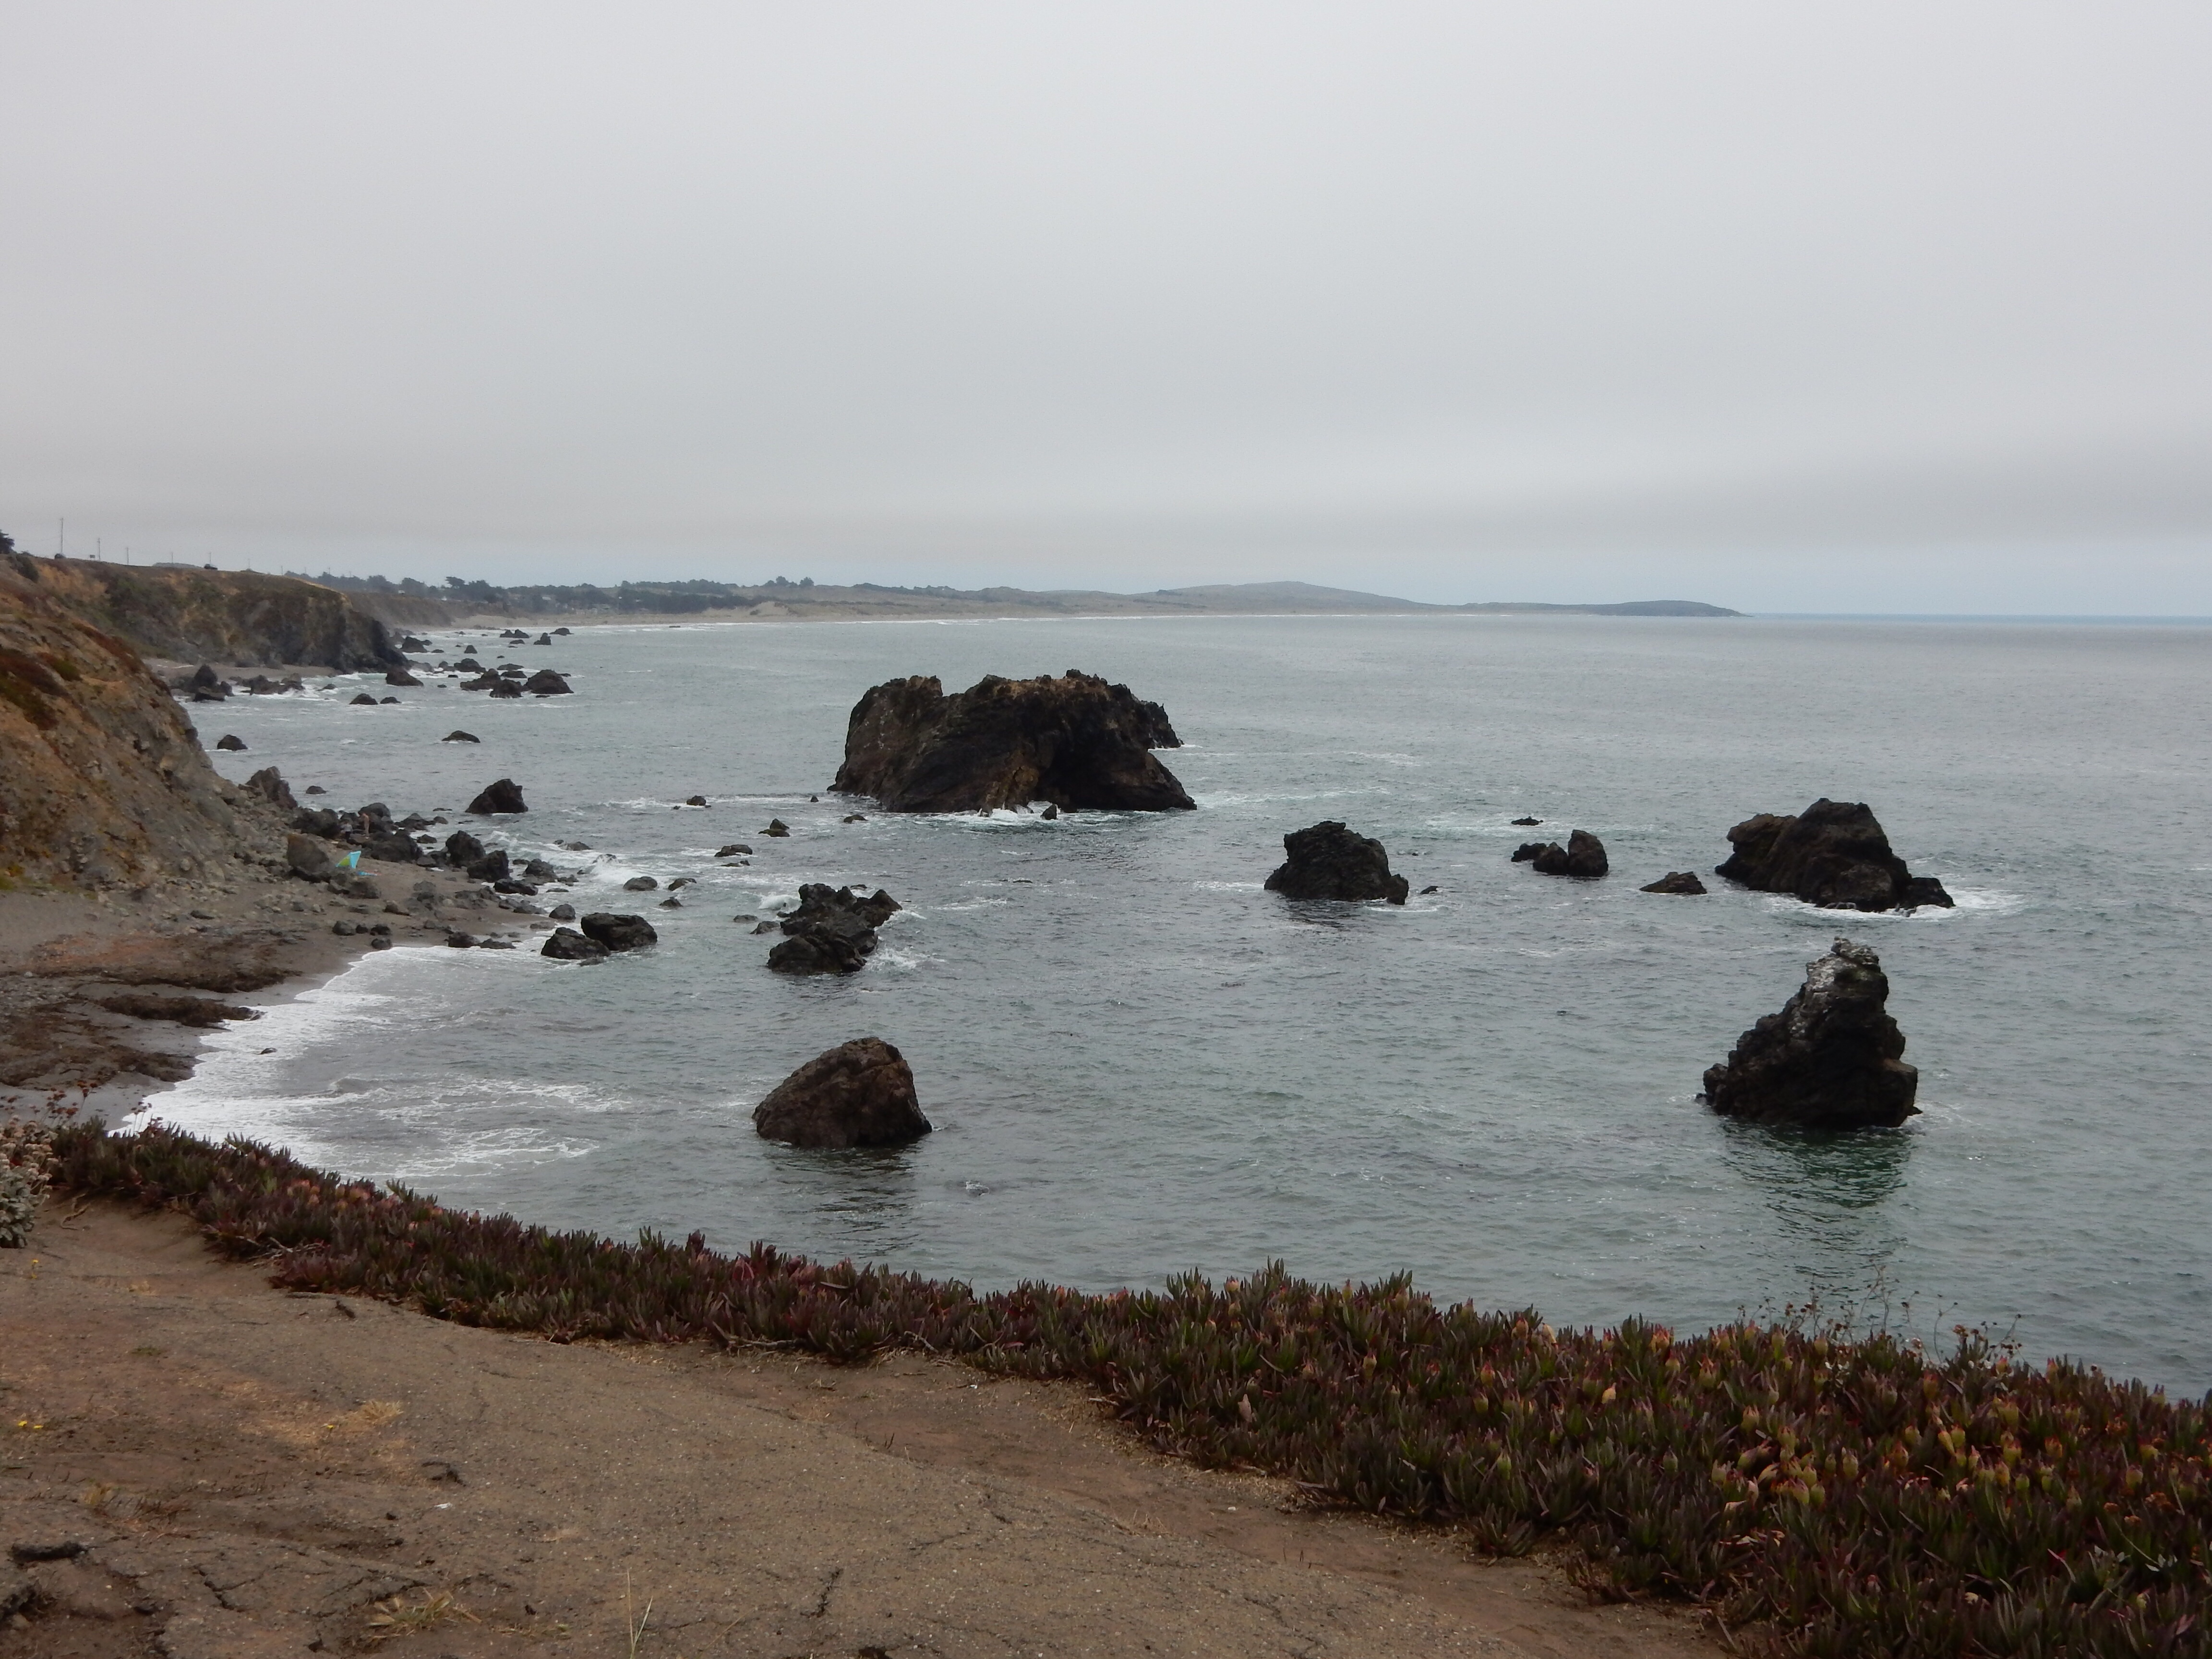 Looking south along the Carmet coastline.